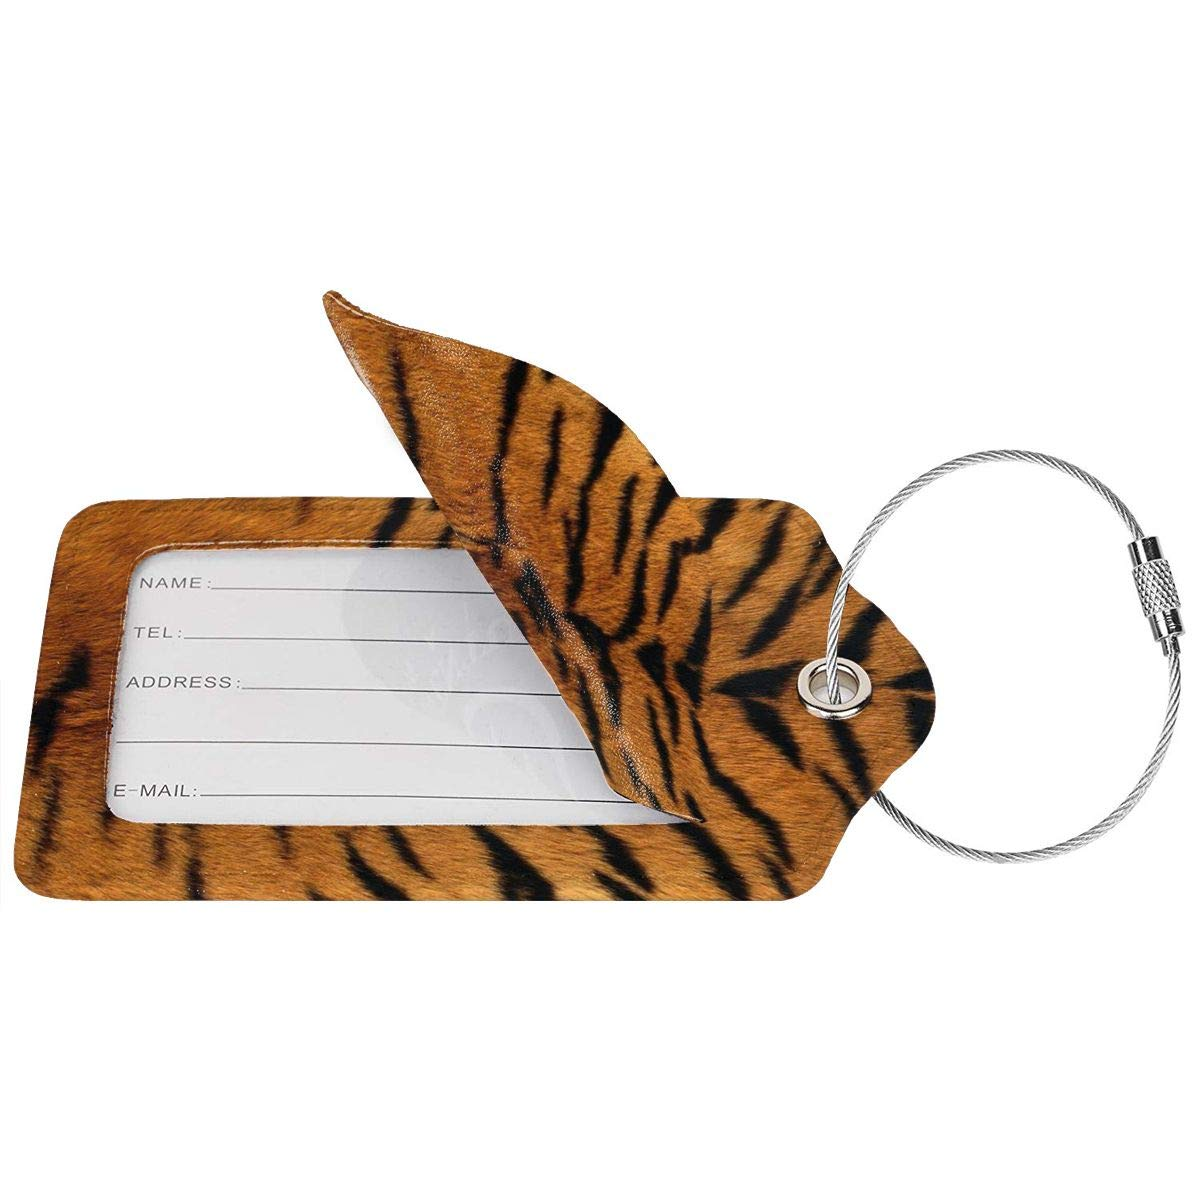 Tiger Fur Business Trip Luggage Tags Information Labels Leather Cover Owner Contact Information Card For Suitcase//Baggage//Boarding Case//Backpack